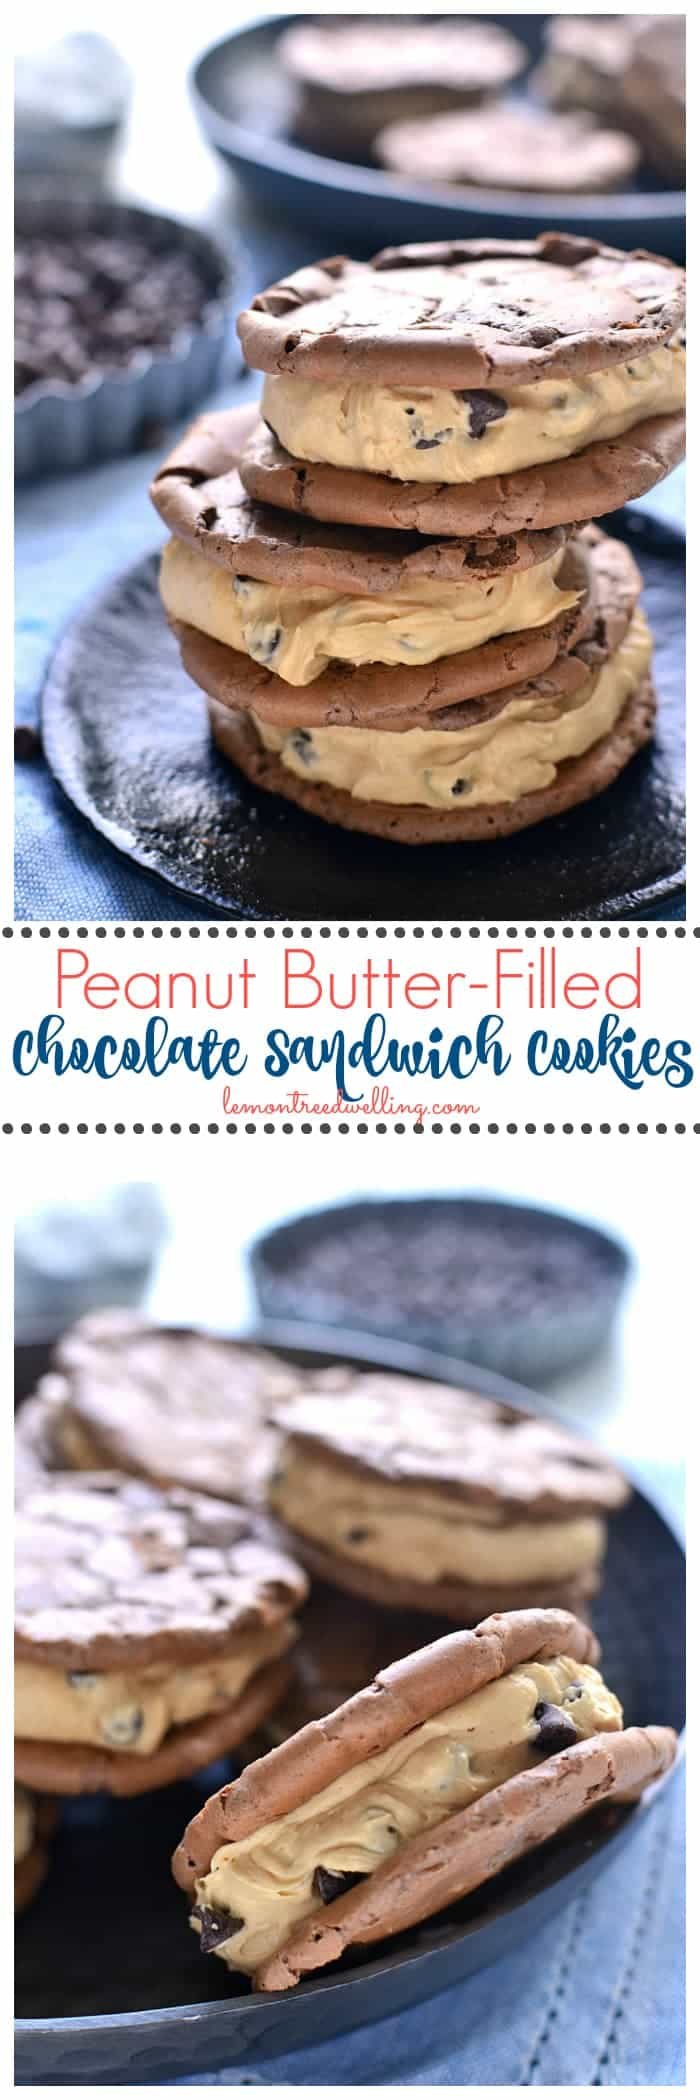 These Peanut Butter-Filled Chocolate Sandwich Cookies are the perfect pairing of two favorite flavors. Chewy chocolatey cookies meet creamy peanut butter frosting in these deliciously dreamy sandwich cookies!